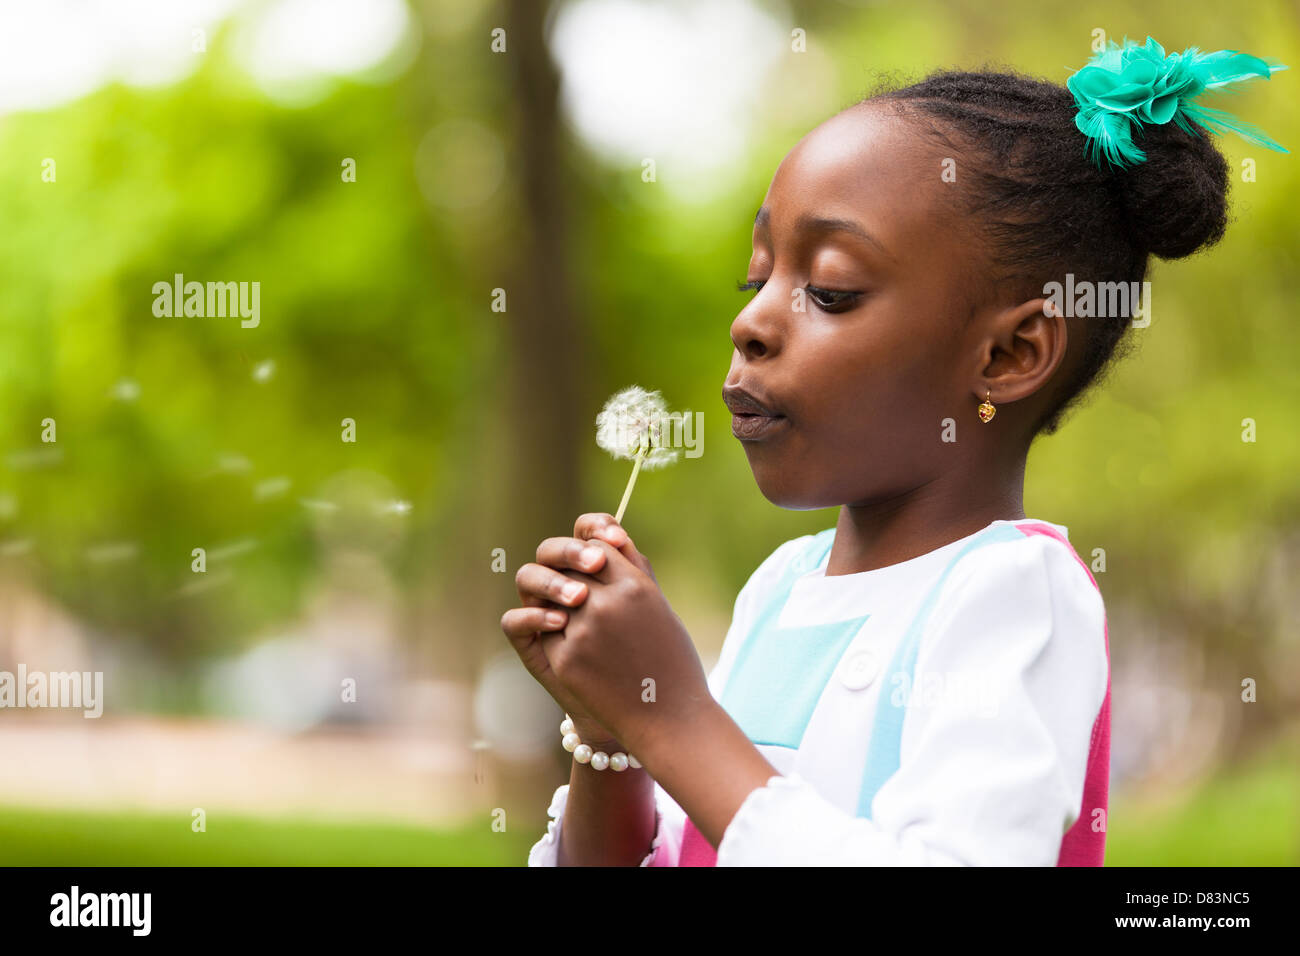 Outdoor portrait of a cute young black girl blowing a dandelion flower - African people - Stock Image